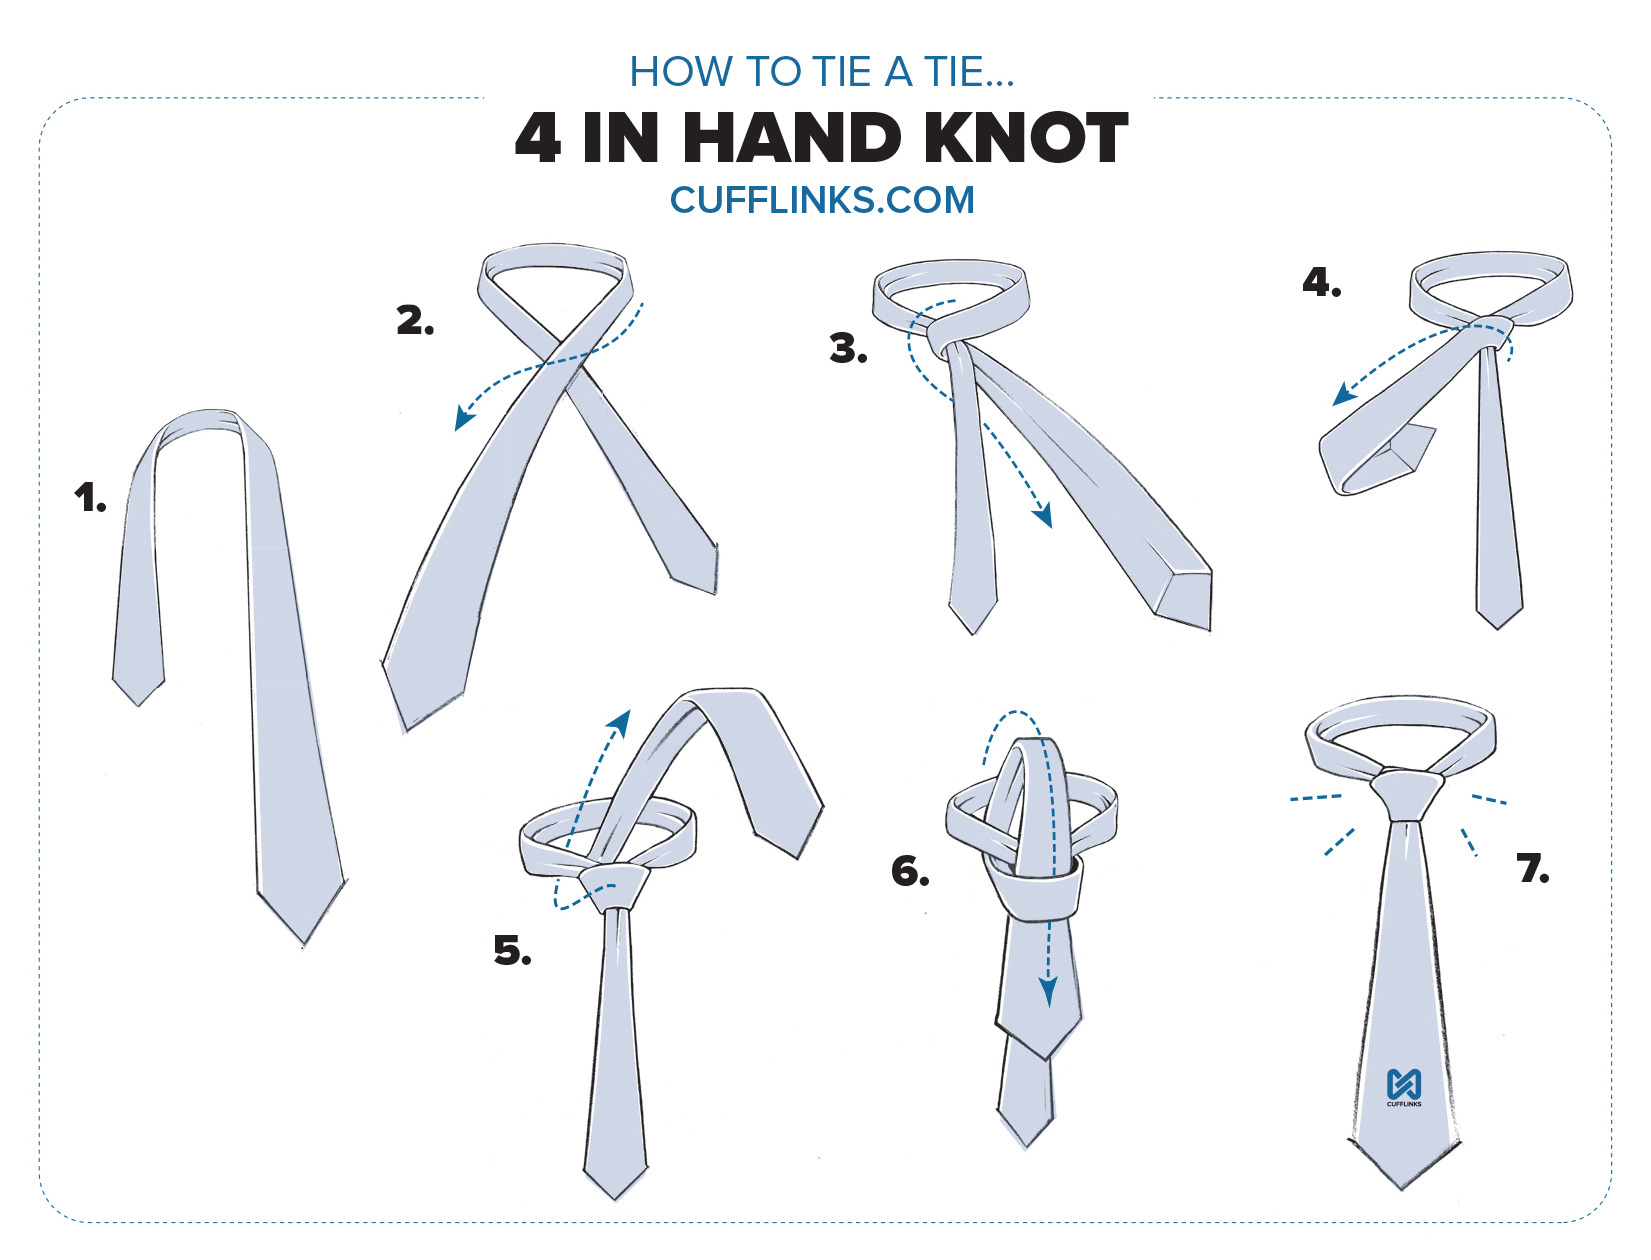 How to Tie a 4 in Hand Knot